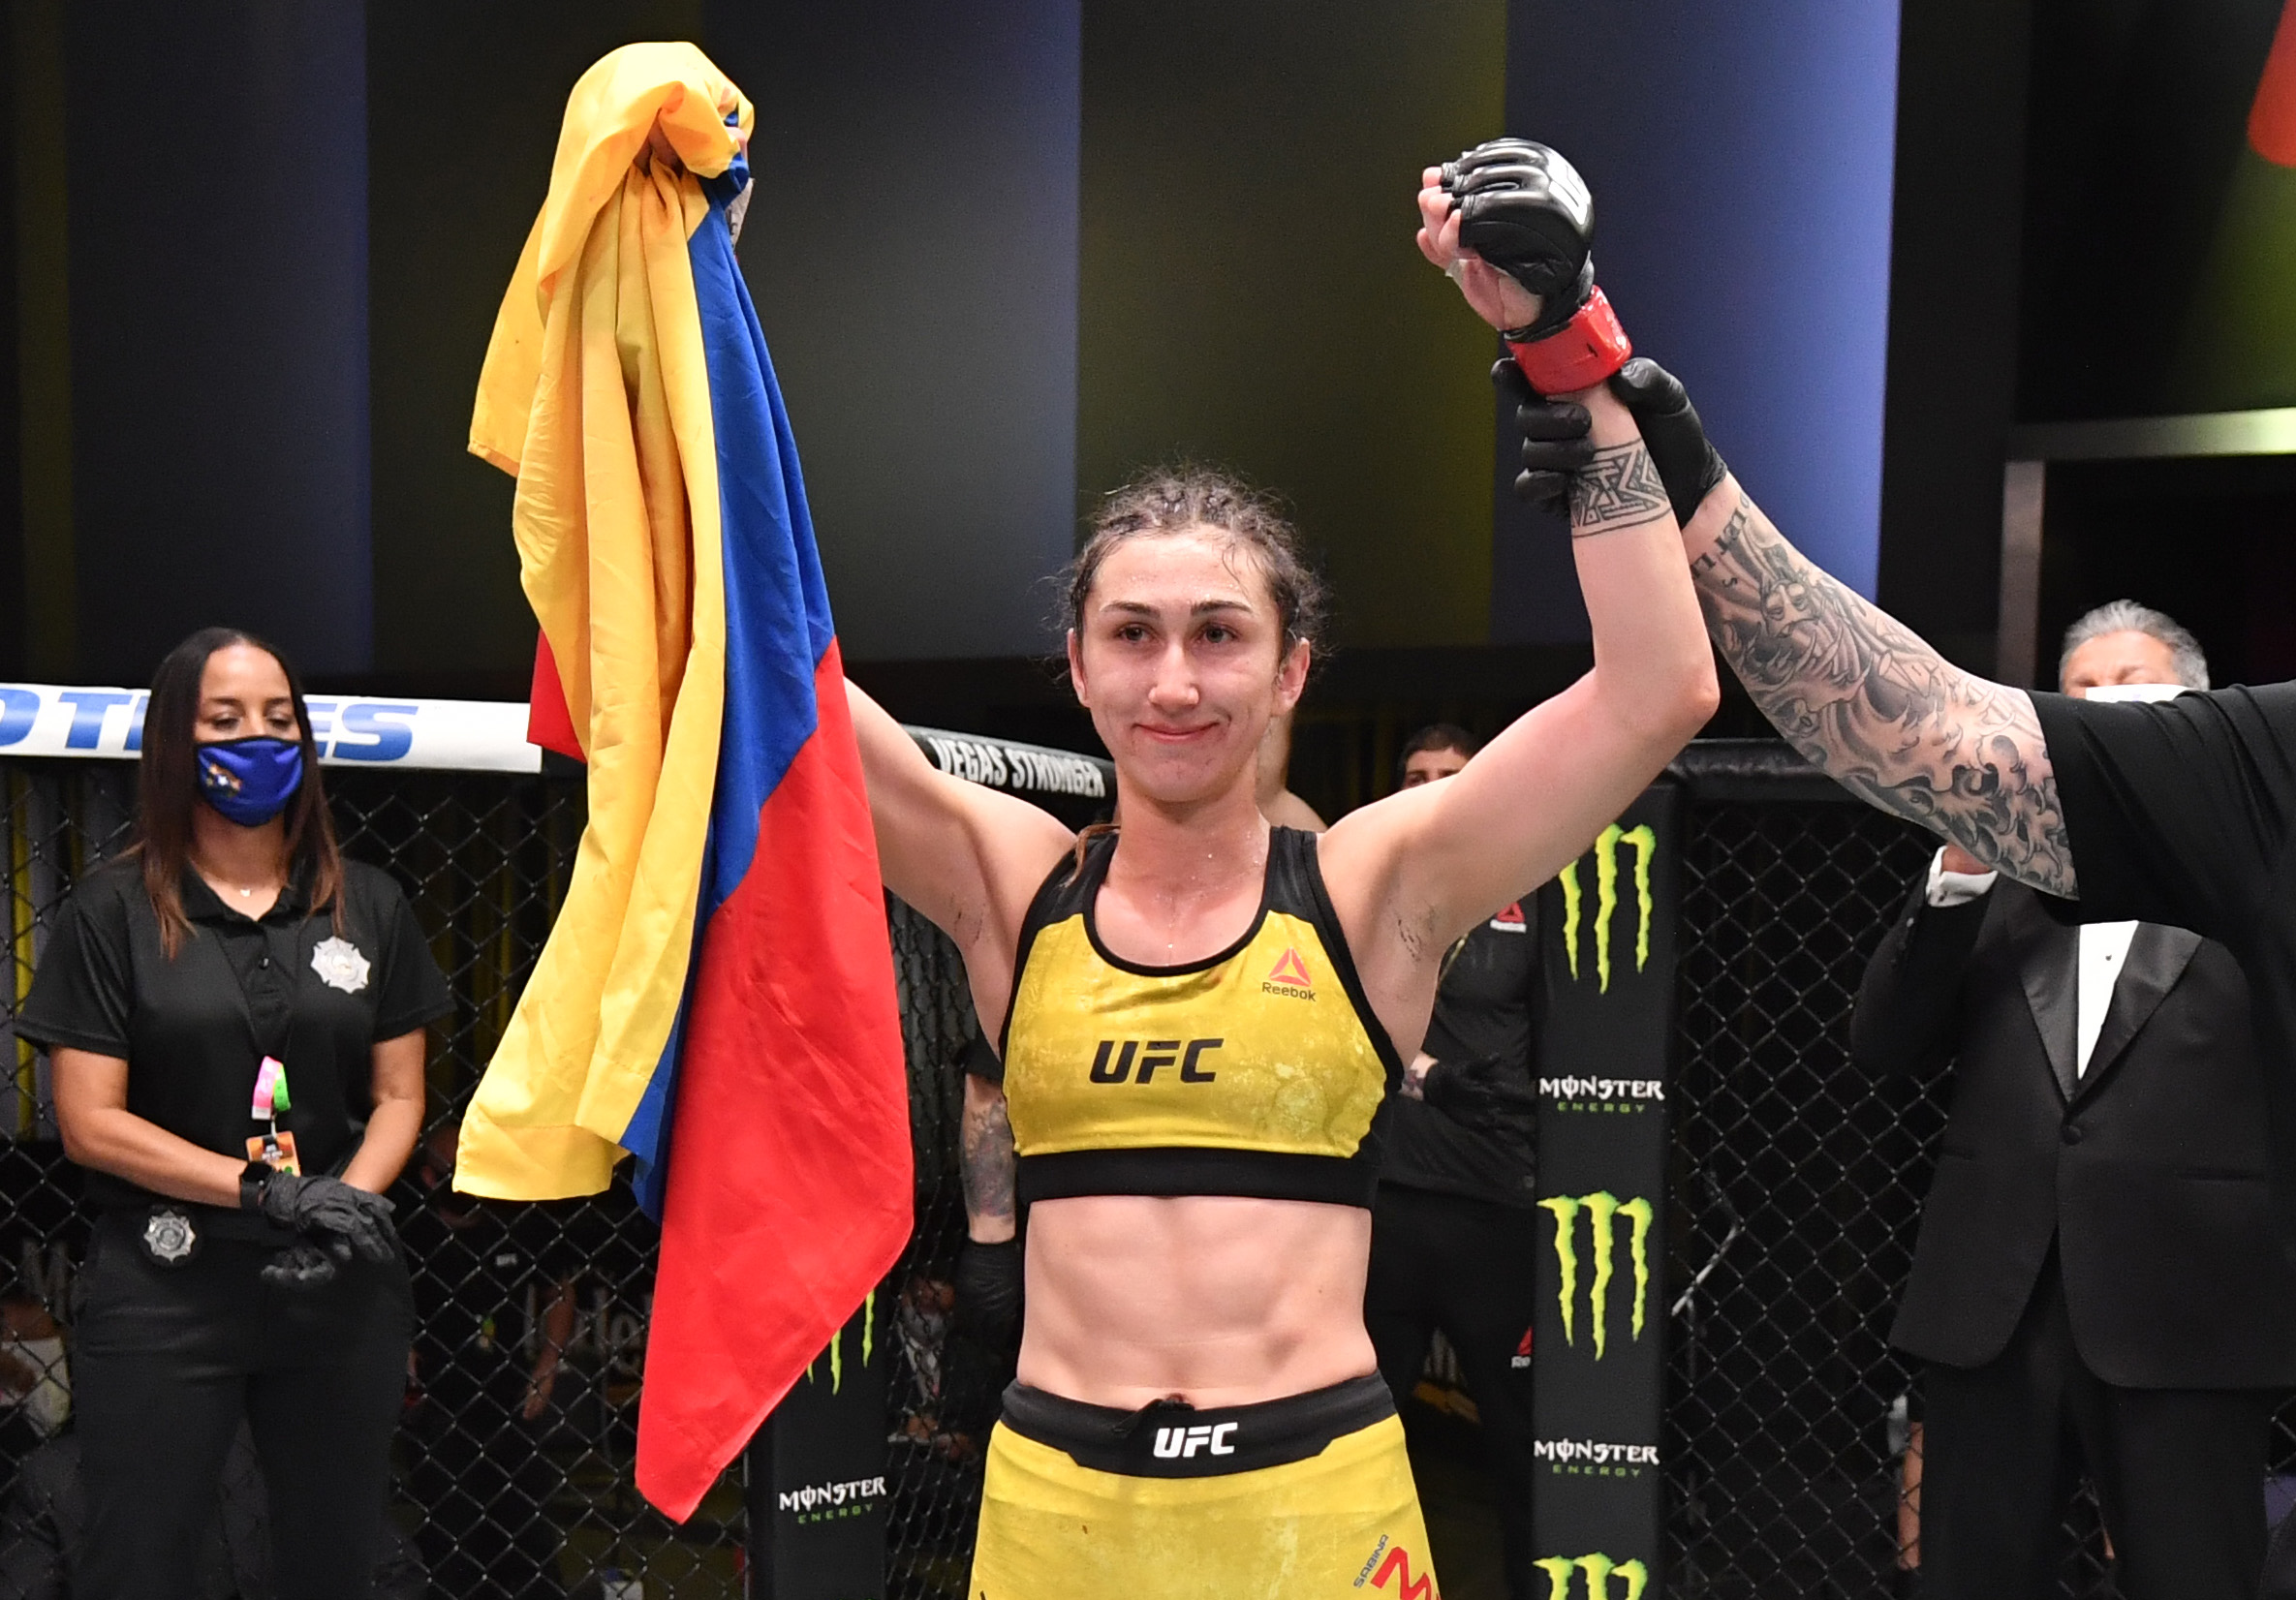 Sabina Mazo of Colombia reacts after her submission victory over Justine Kish of Russia in a flyweight fight during the UFC Fight Night event at UFC APEX on September 12, 2020 in Las Vegas, Nevada. (Photo by Jeff Bottari/Zuffa LLC)